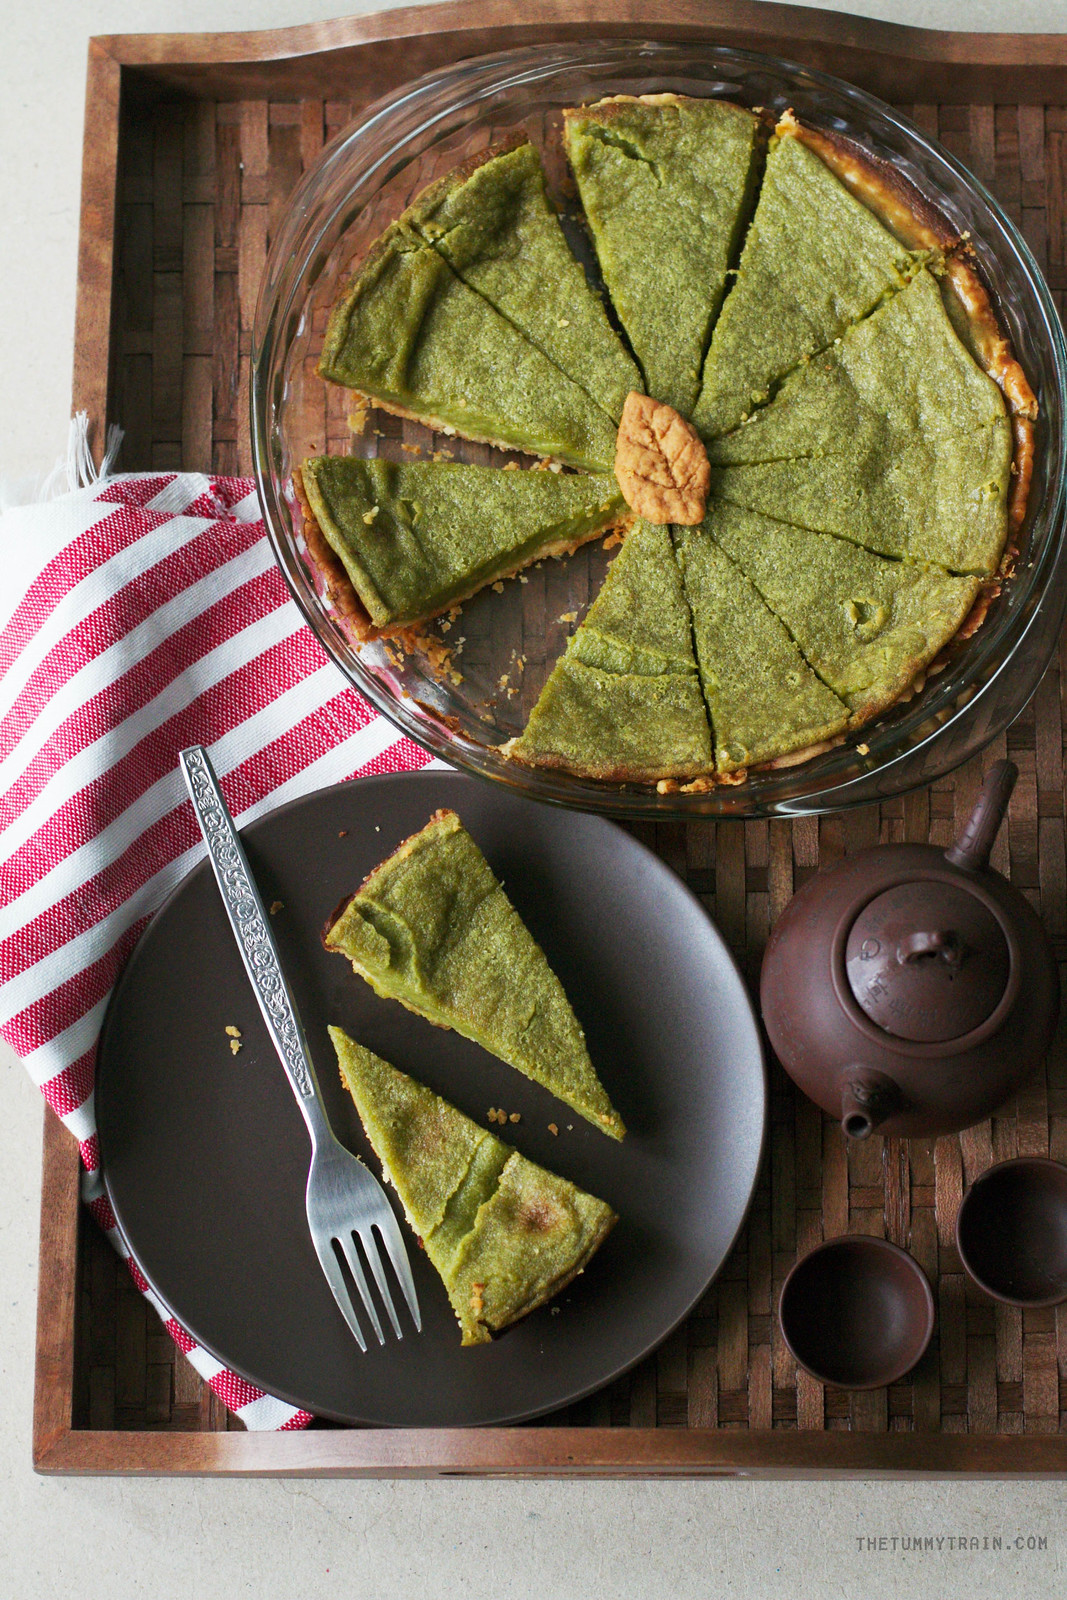 29838438110 0aa10e1416 h - Second chance Matcha Pie using Matcha King's Ceremonial Matcha